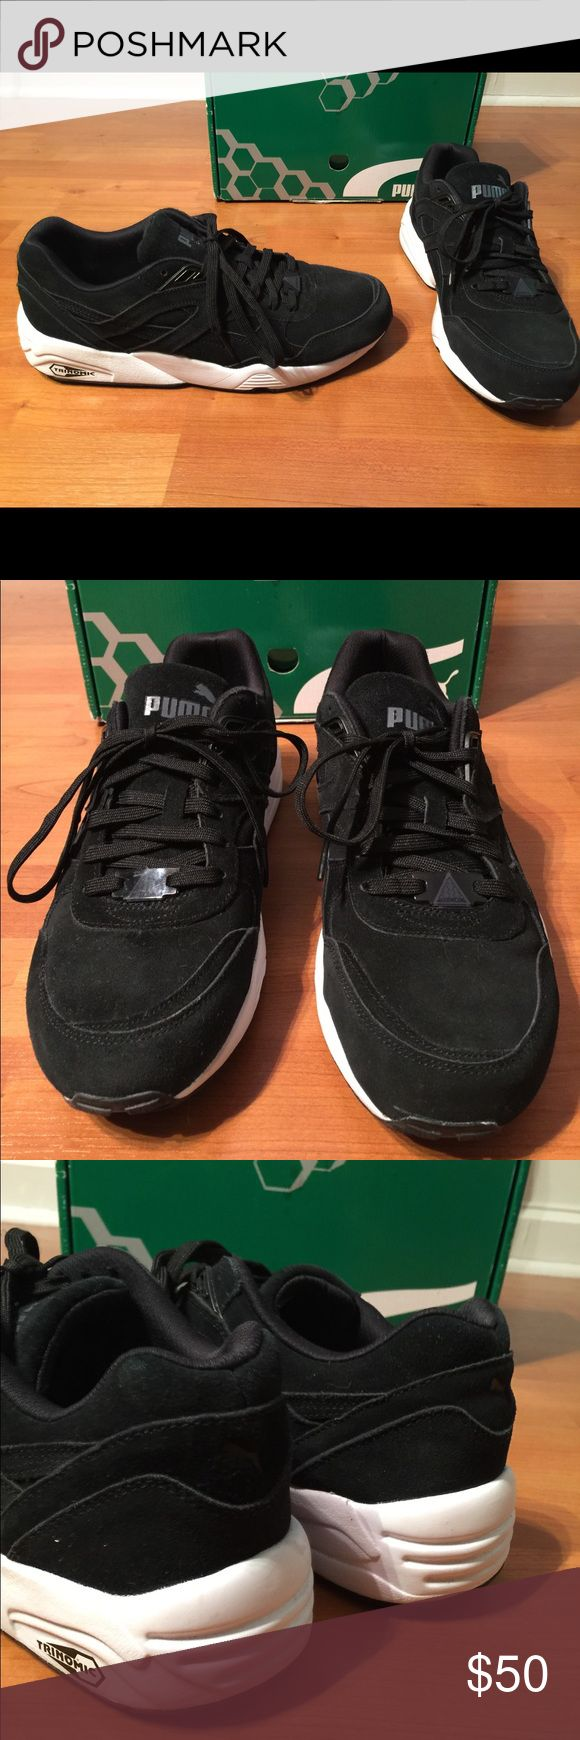 Trinomic by Puma XT 1 Plus black sneakers Worn twice Trinomic by Puma sneakers in a men's size 10. Black suede. Also available in the color blue. Great condition. Includes box. puma Shoes Sneakers